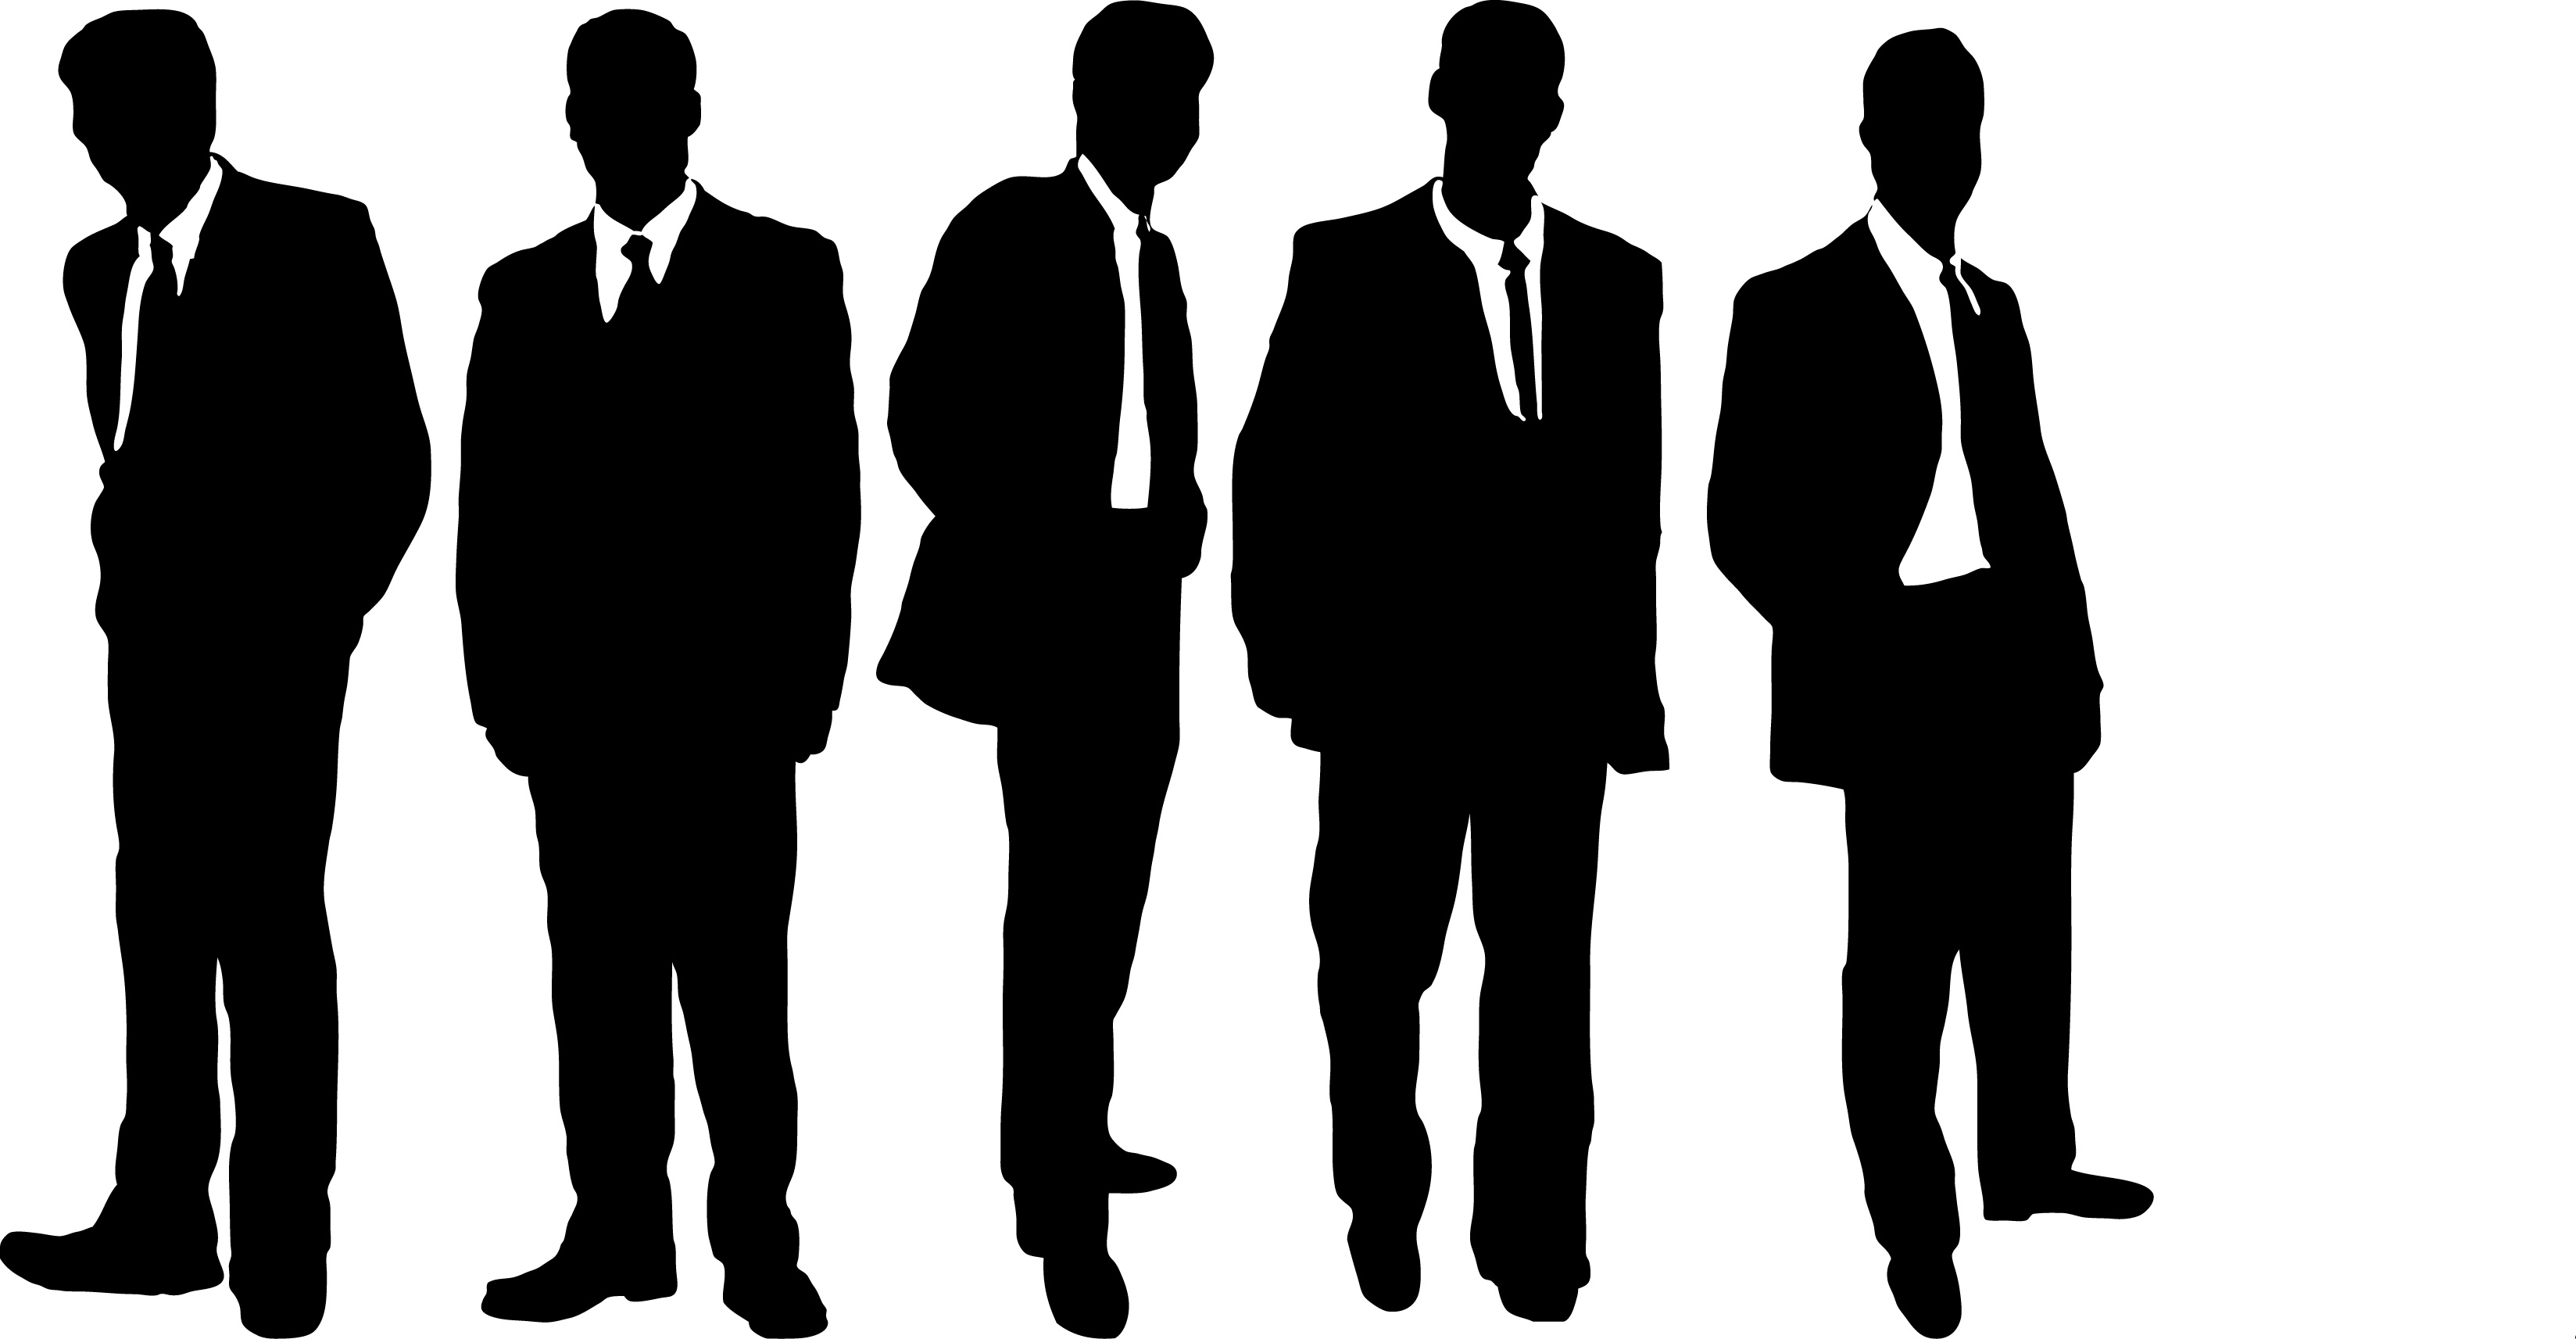 group silhouette clip art at getdrawings com free for personal use rh getdrawings com free business clipart pictures free clipart images for business presentations